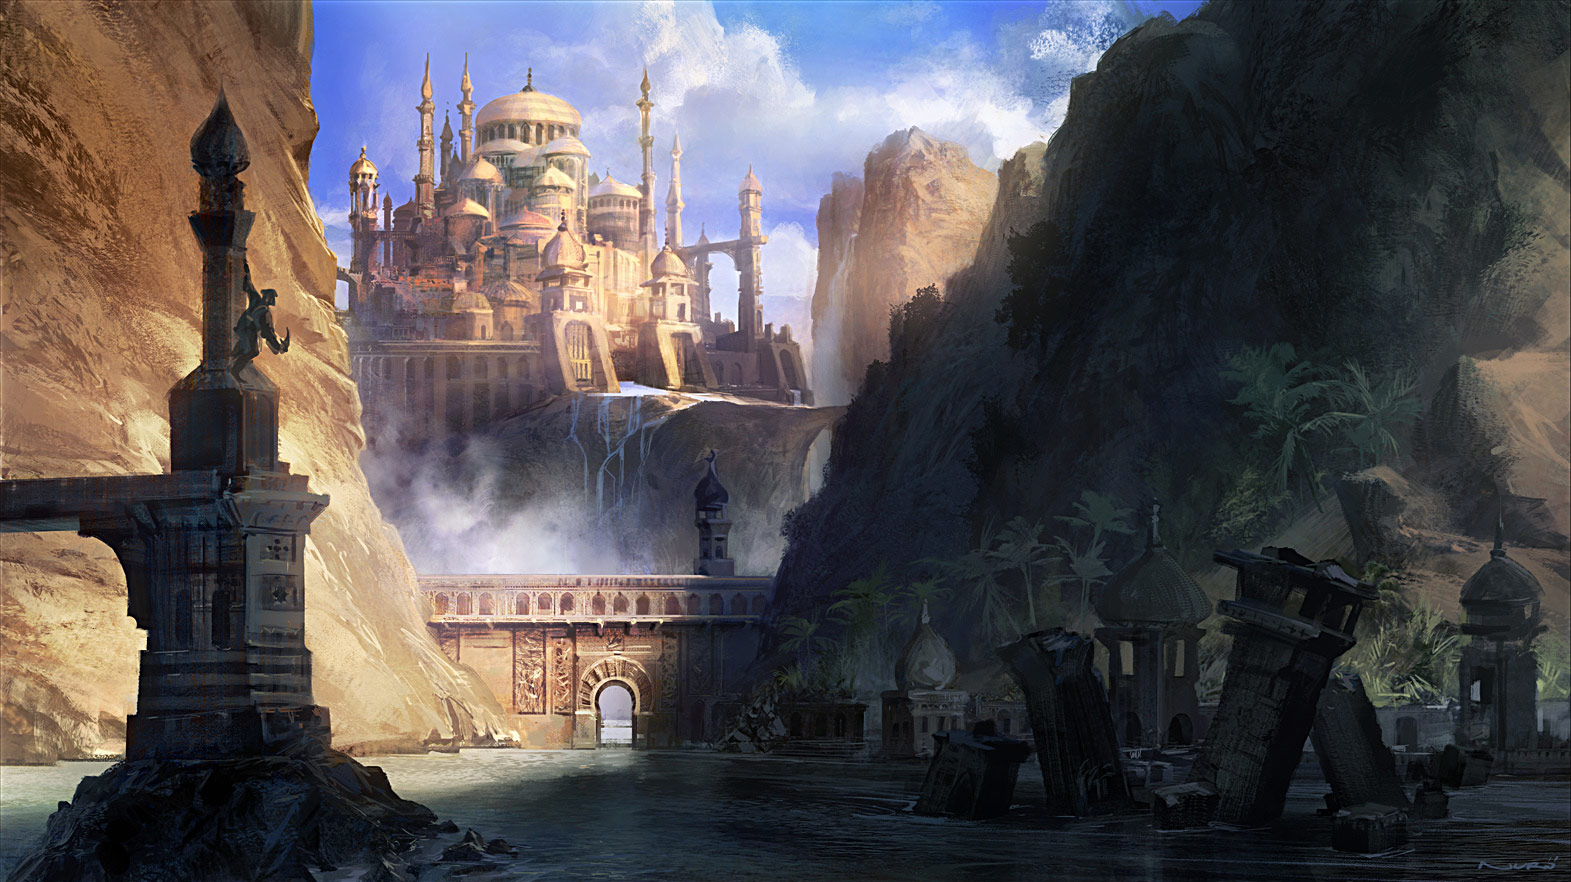 Detalles oficiales de Prince of Persia: the Forgotten Sands